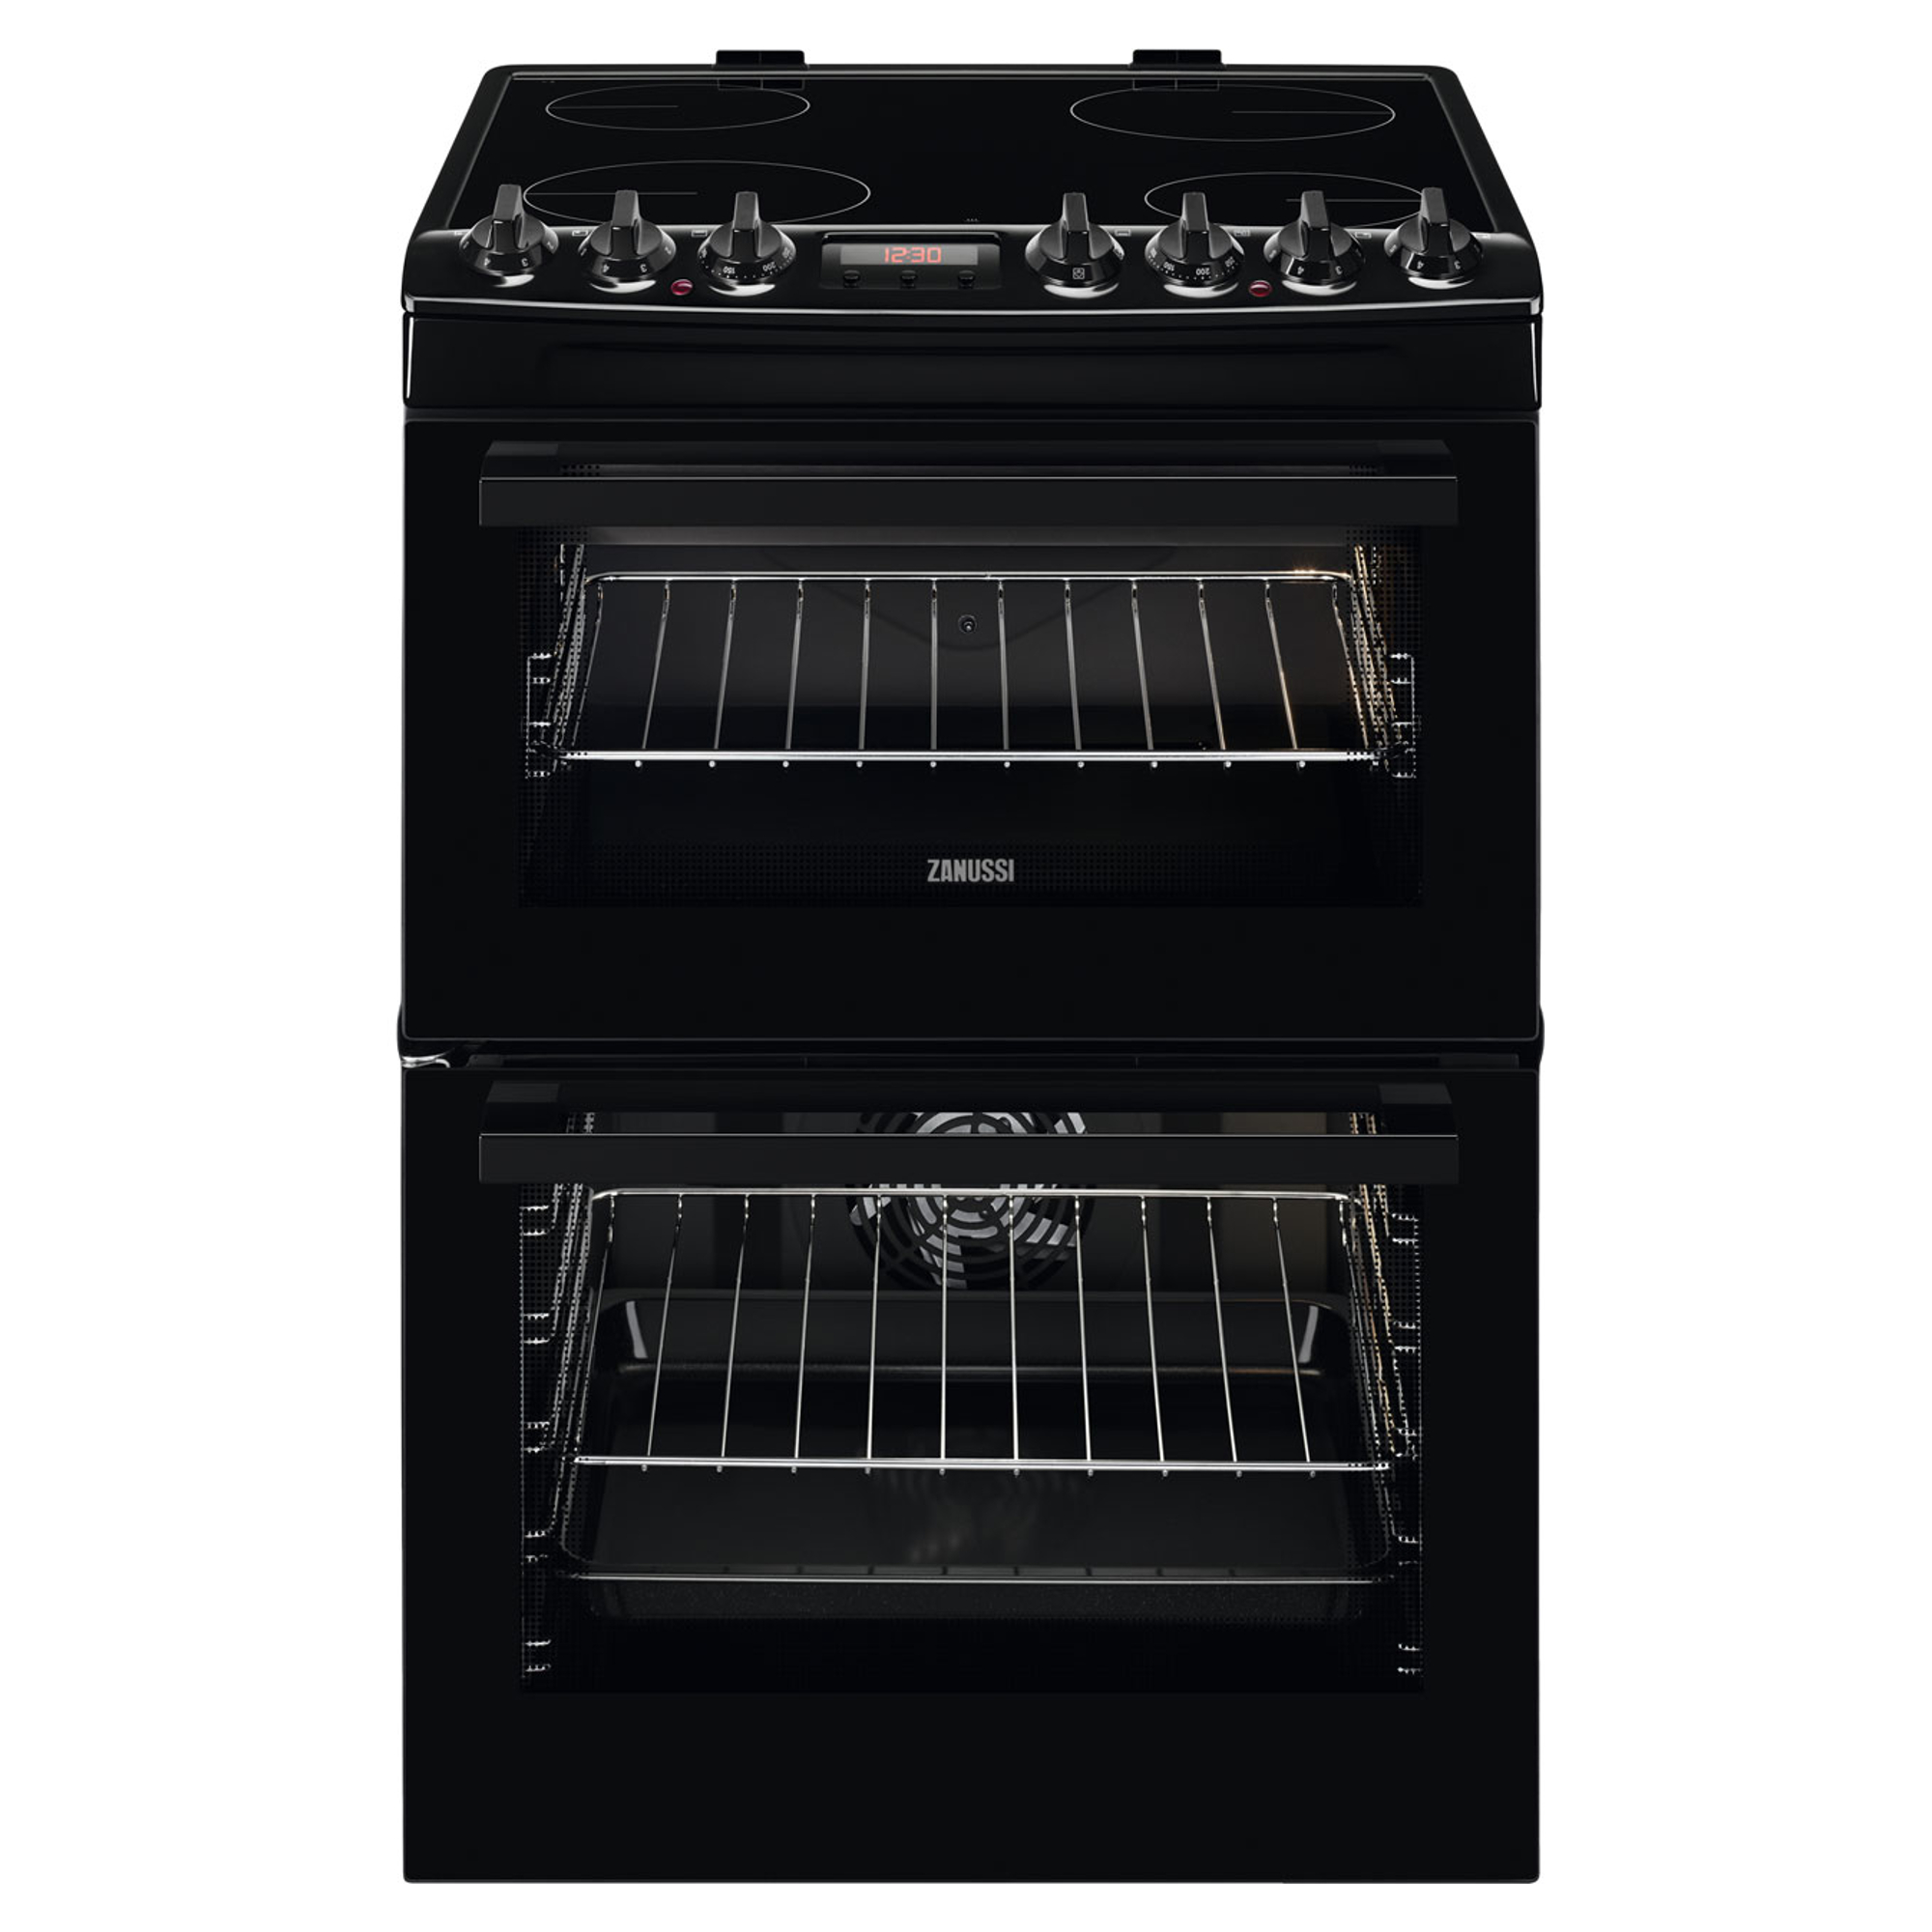 Zanussi Zcv69350ba Electric Cooker With Ceramic Hob